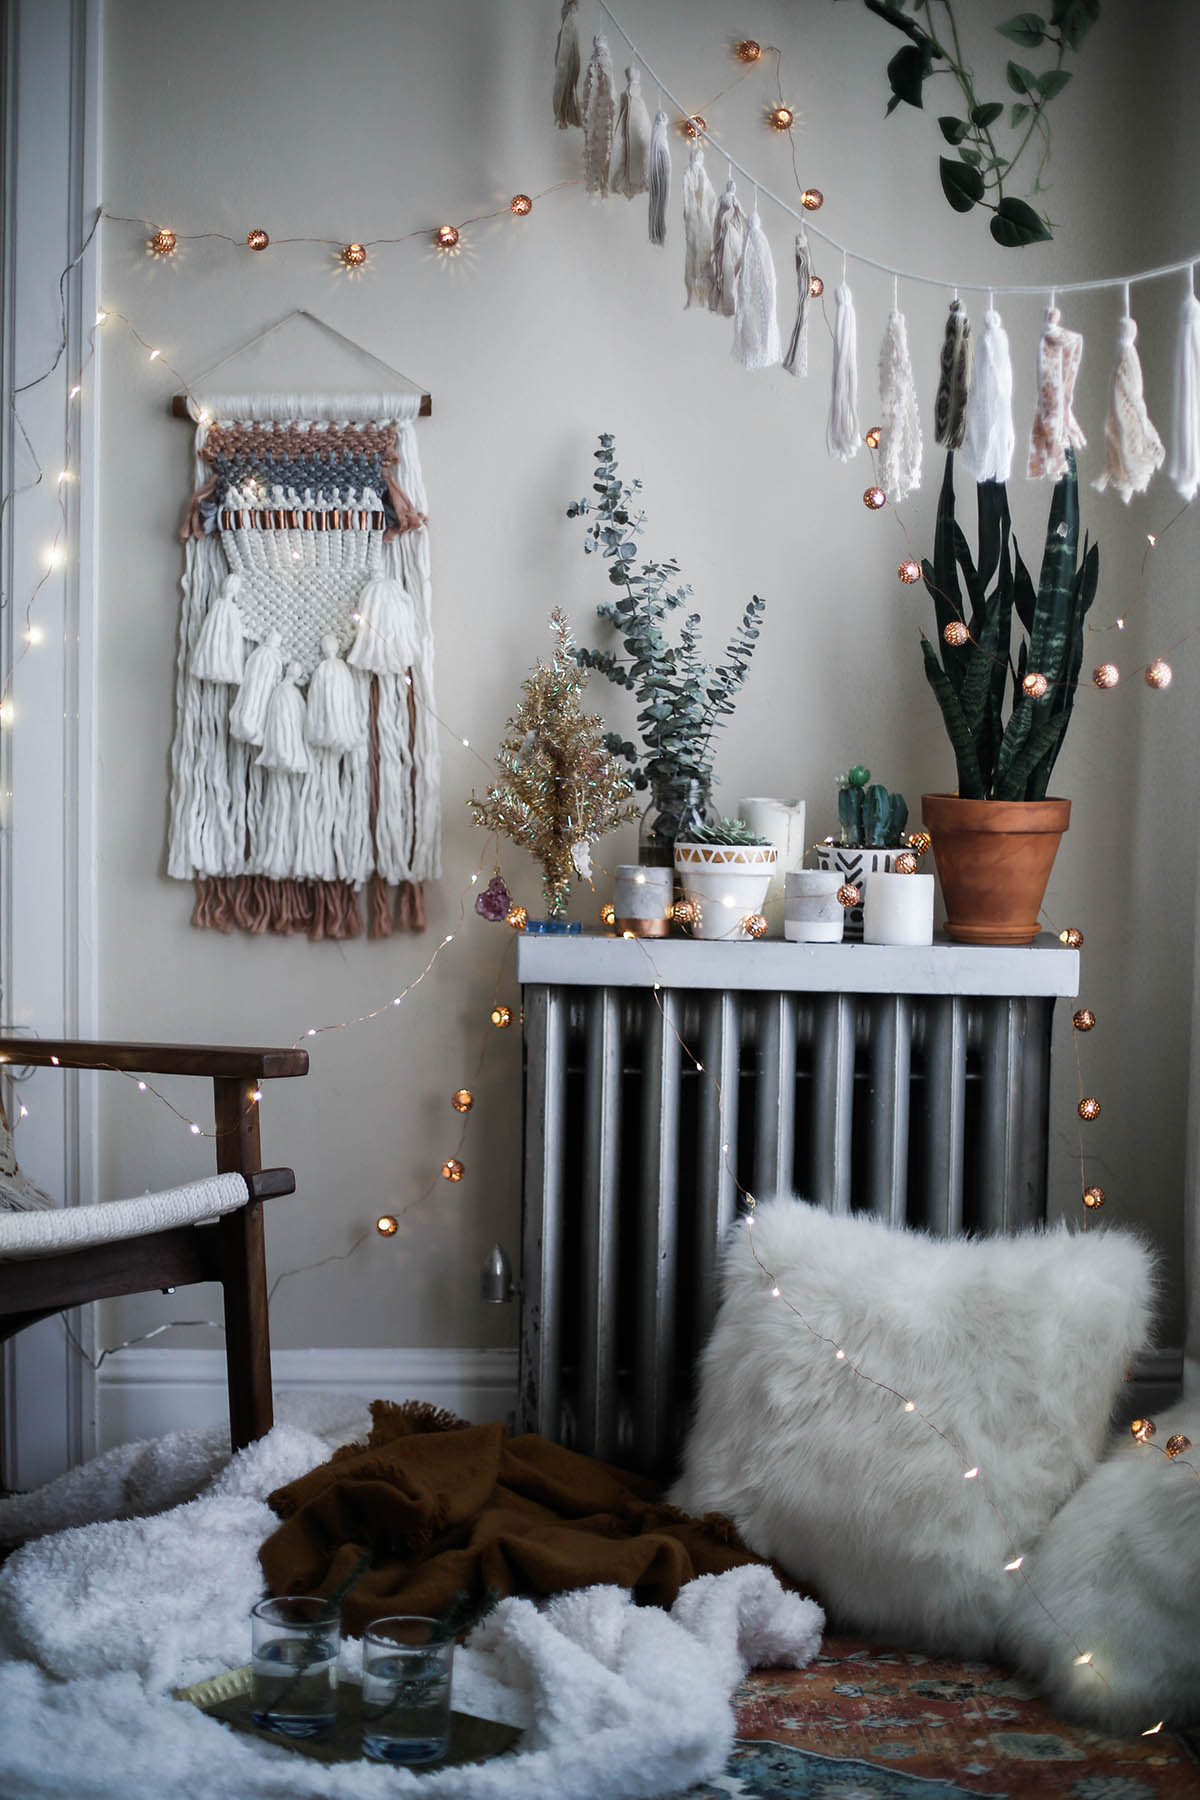 cozy bohemian holiday decorations with Urban Outfitters home